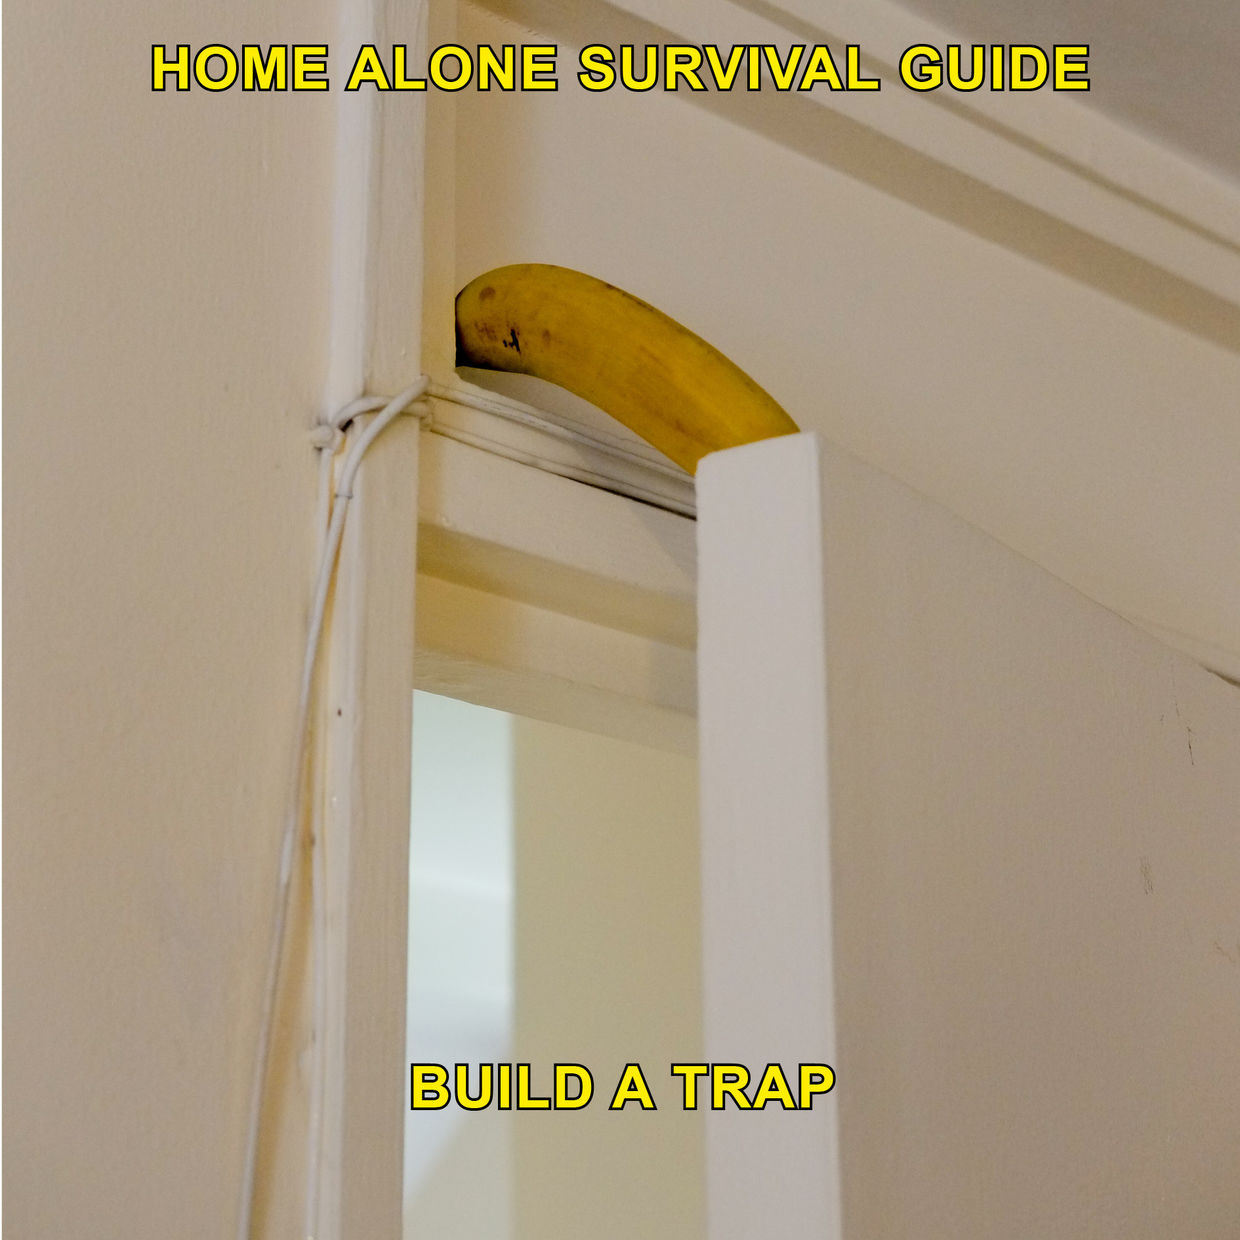 'Home Alone Survival Guide' by Max Siedentopf (HATJE CANTZ)